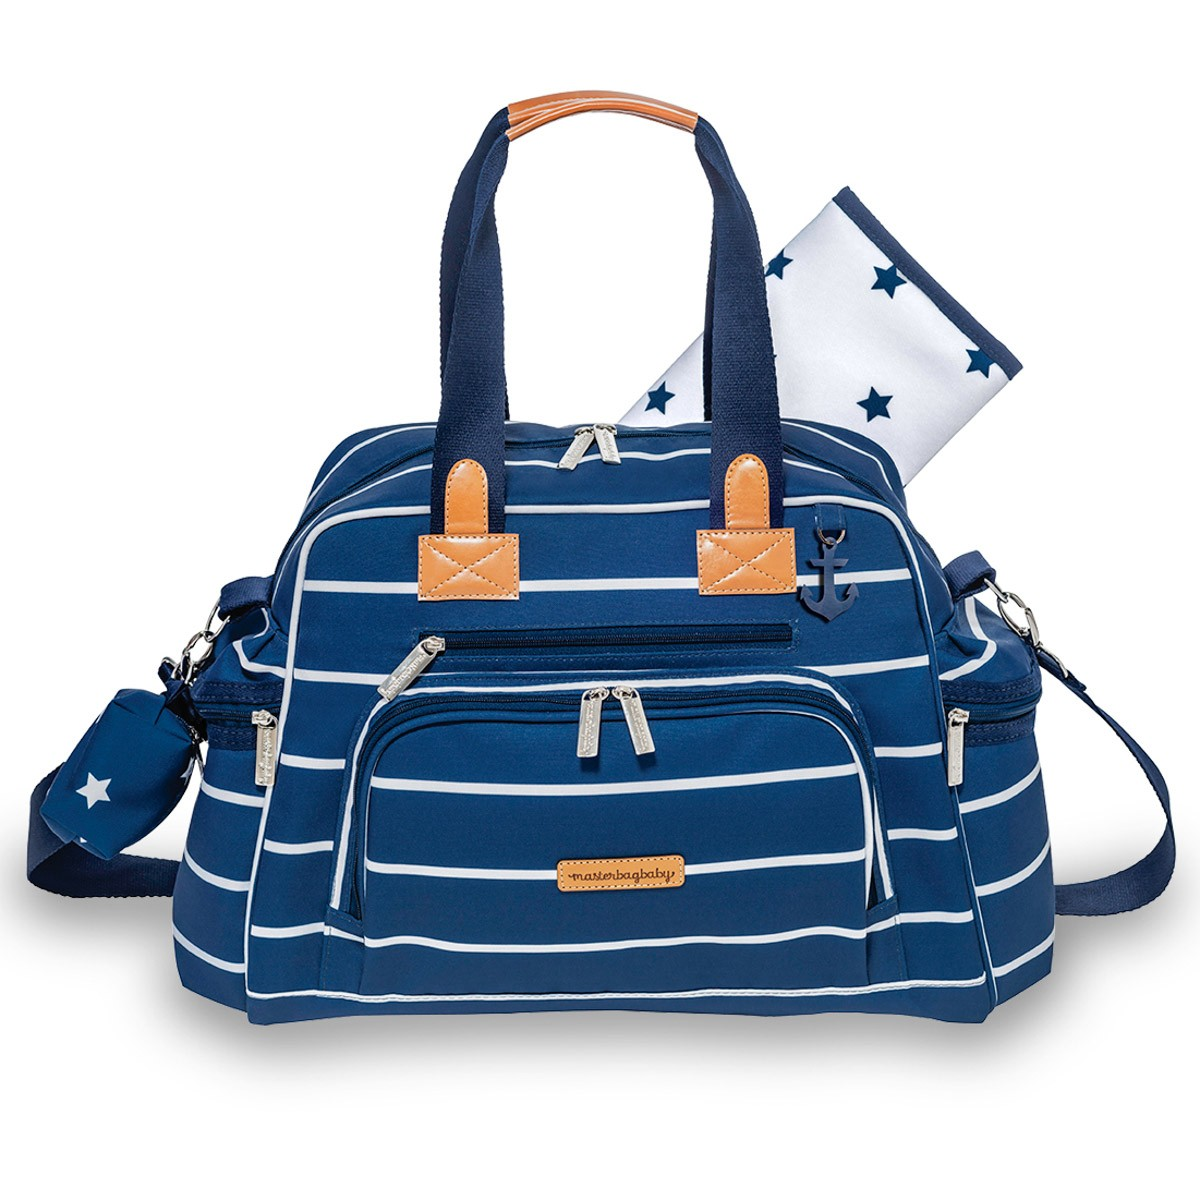 BOLSA MATERNIDADE MASTERBAG EVERDAY NAVY STAR